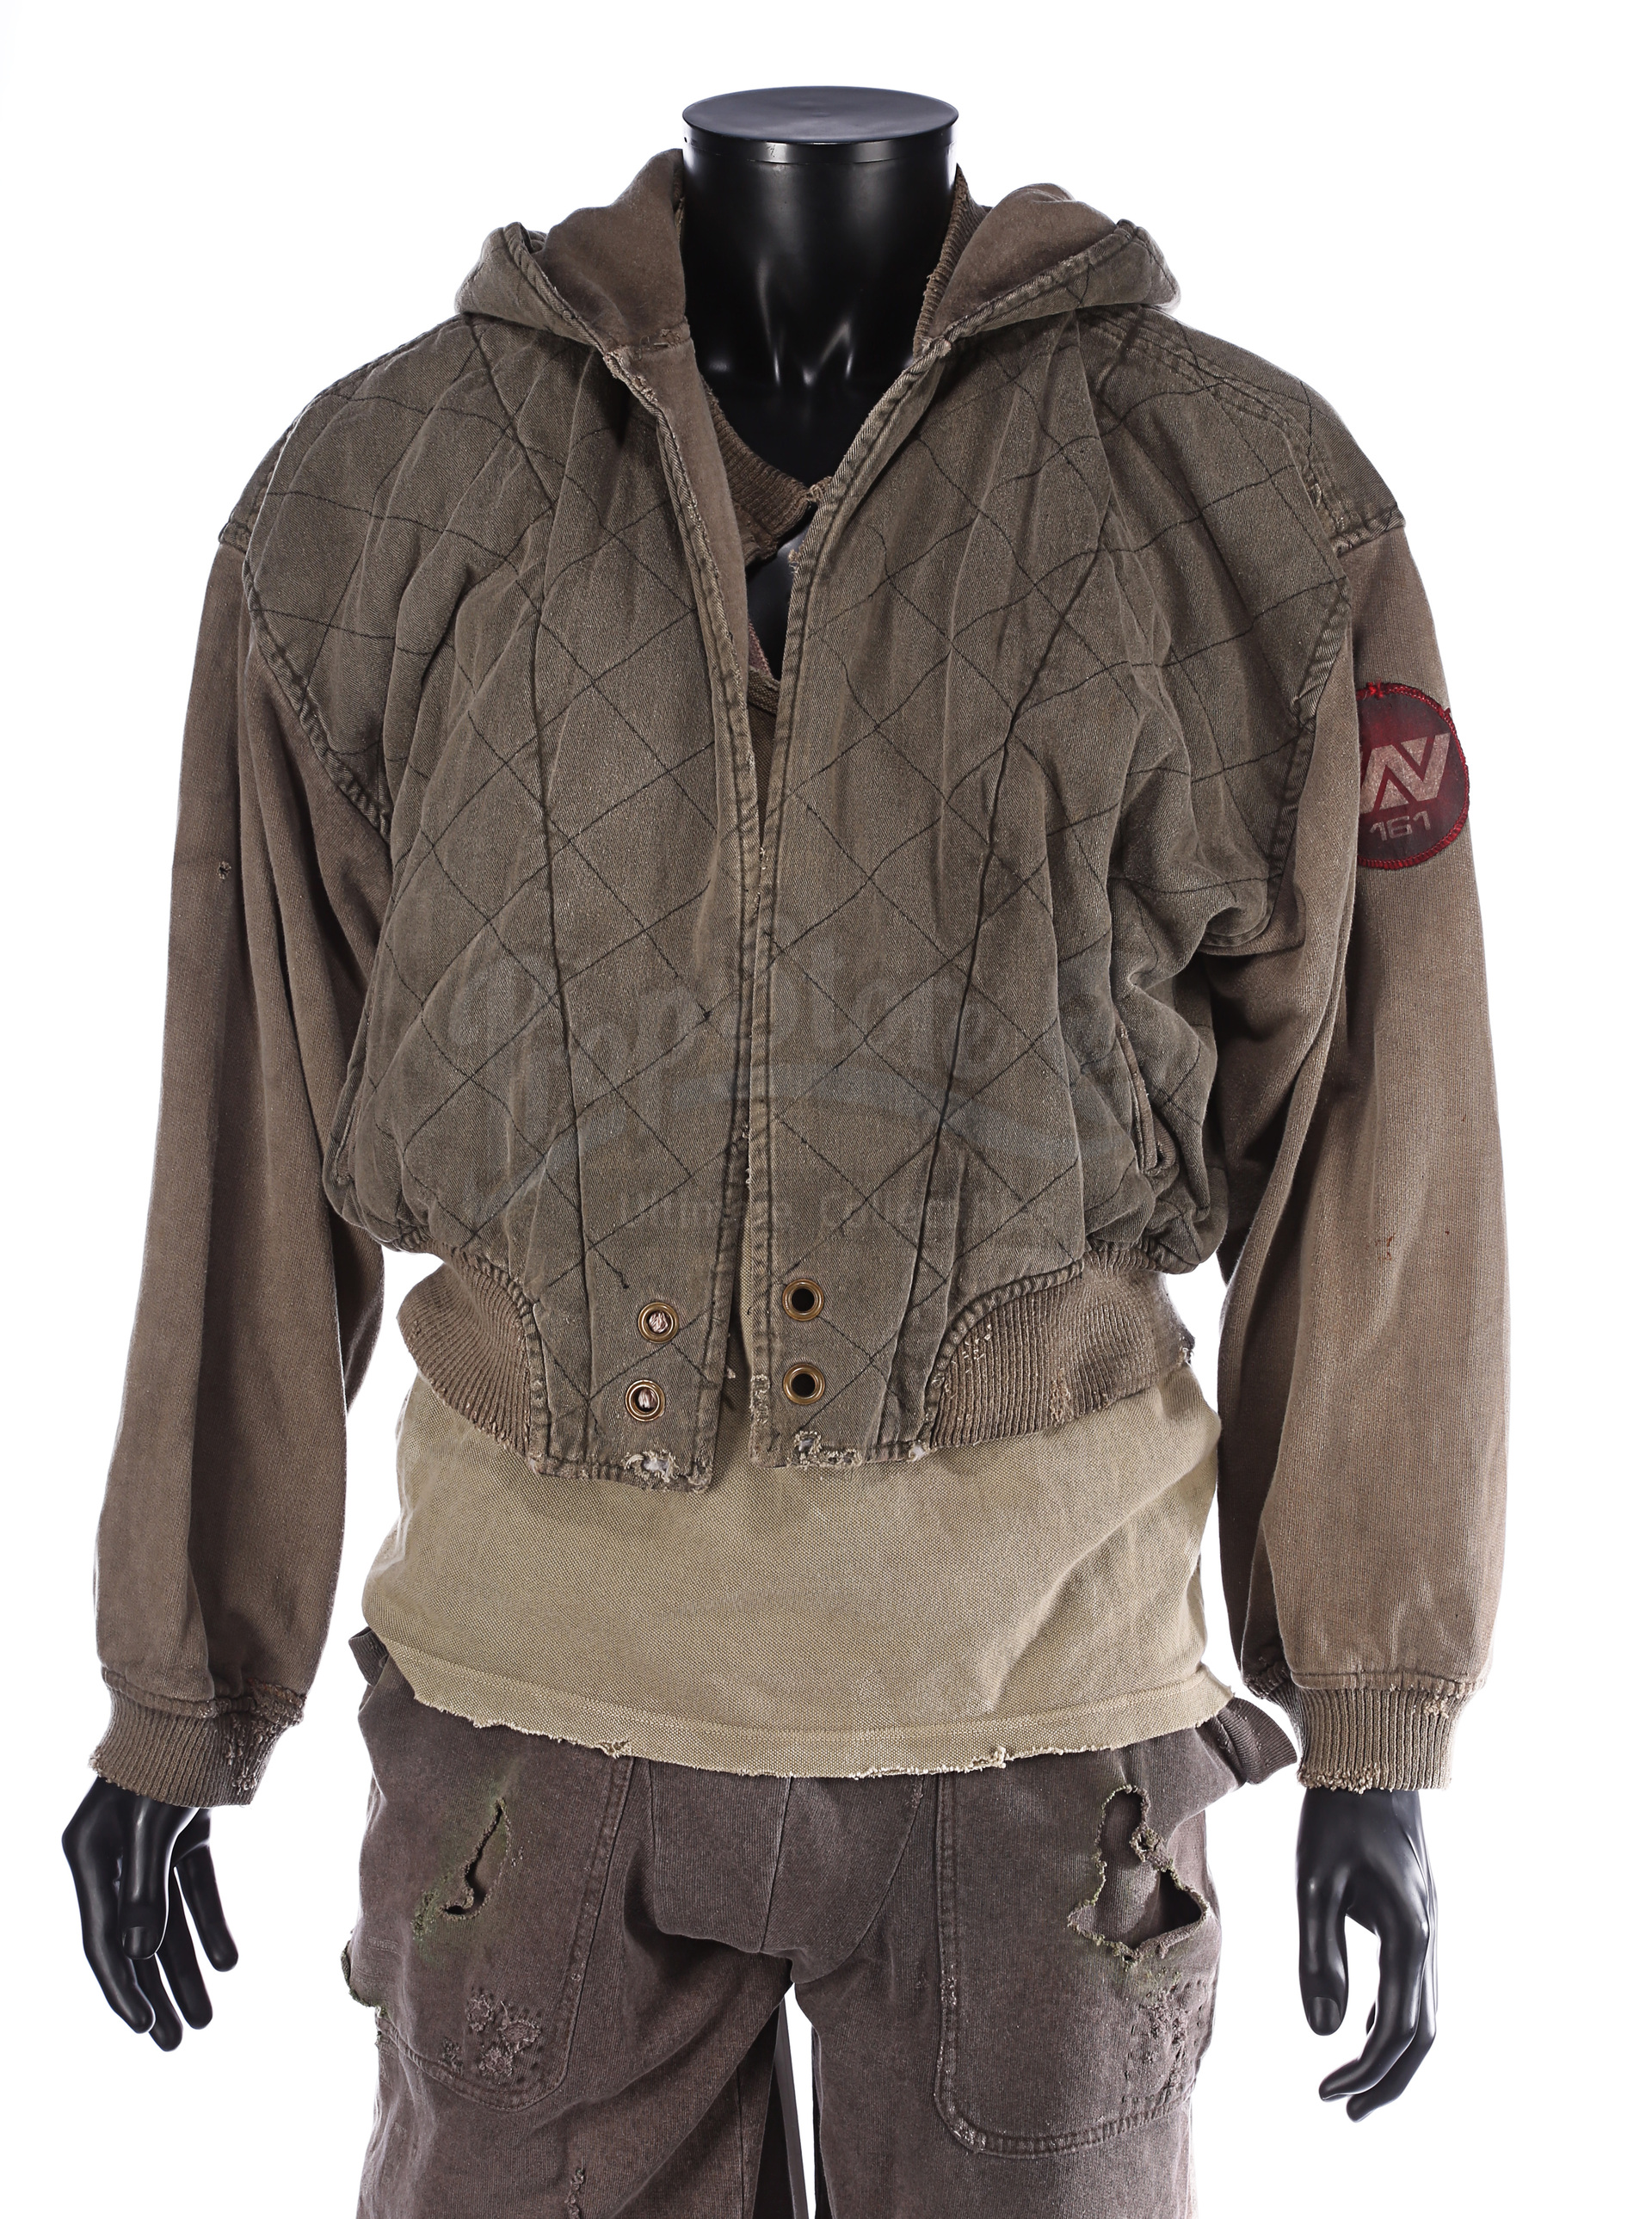 ALIEN3 (1992) - Dillon's (Charles S. Dutton) Complete Costume - Image 5 of 17